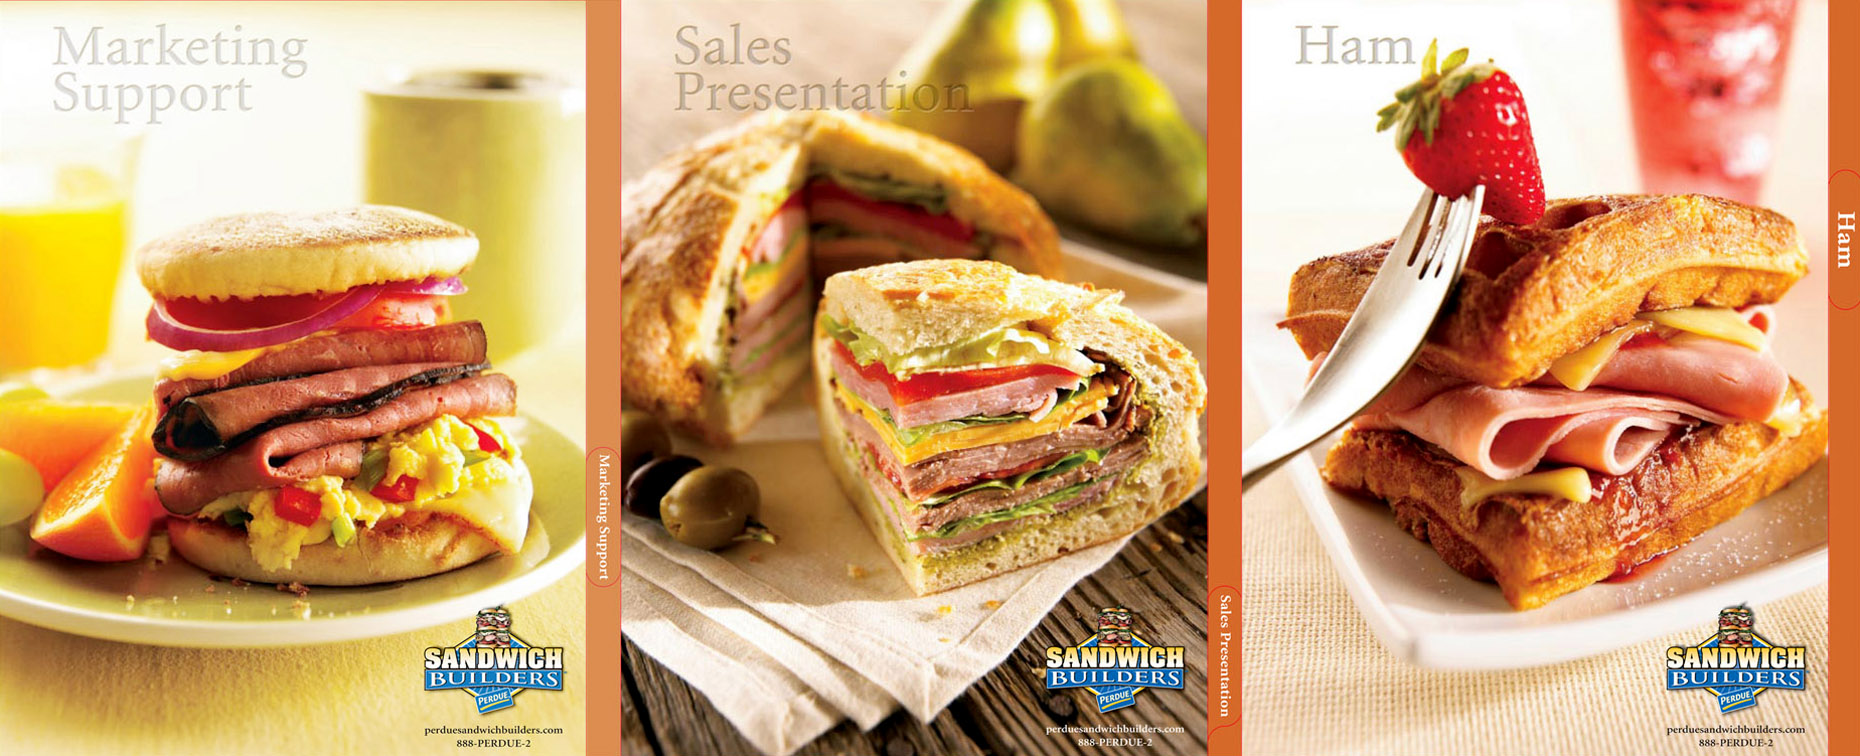 Food Photography_POS Food Photography_Perdue_Sandwich Photography